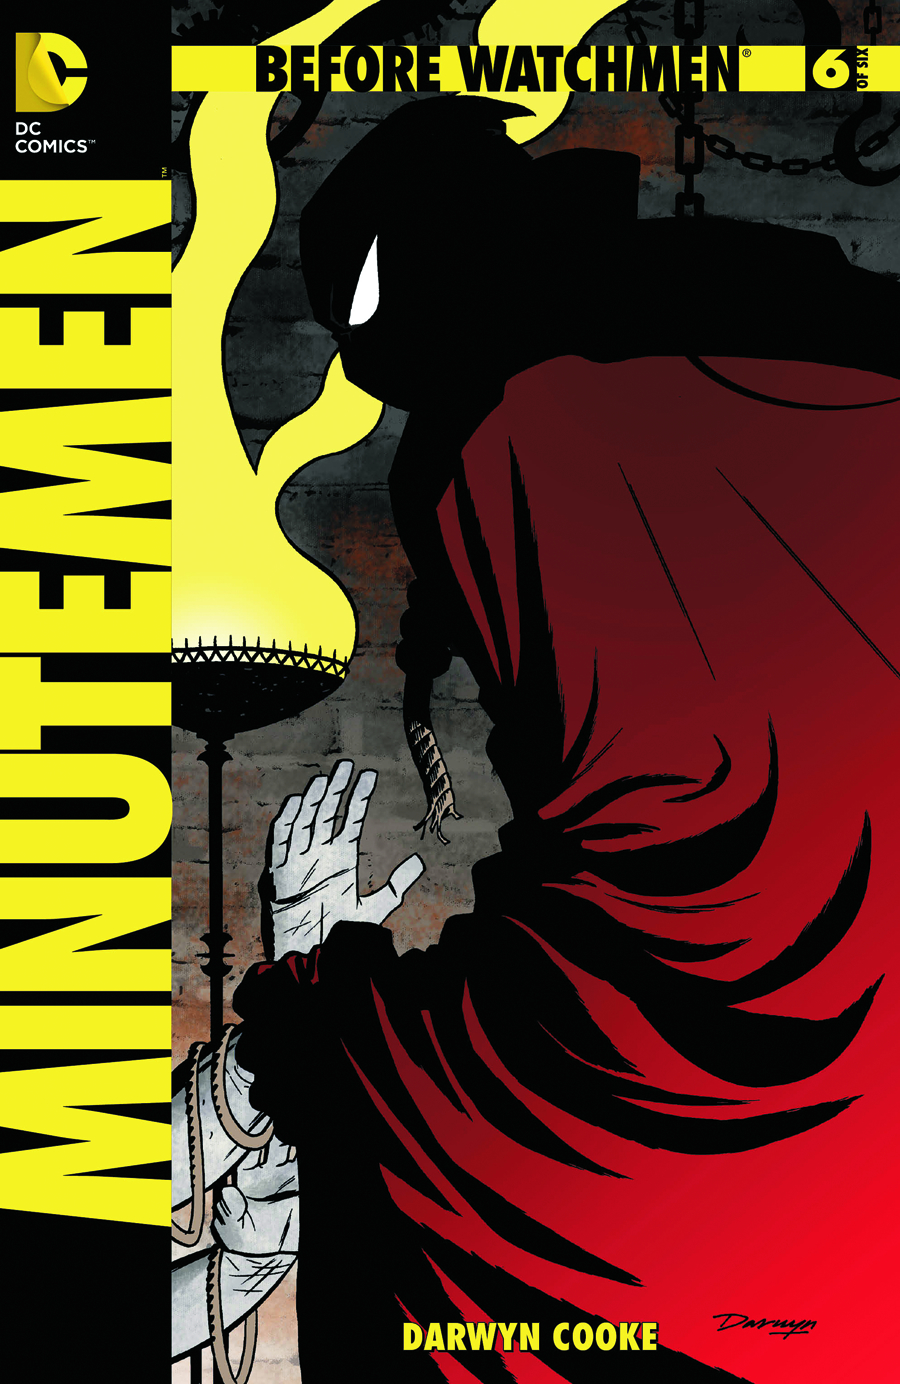 BEFORE WATCHMEN MINUTEMEN #6 (OF 6)